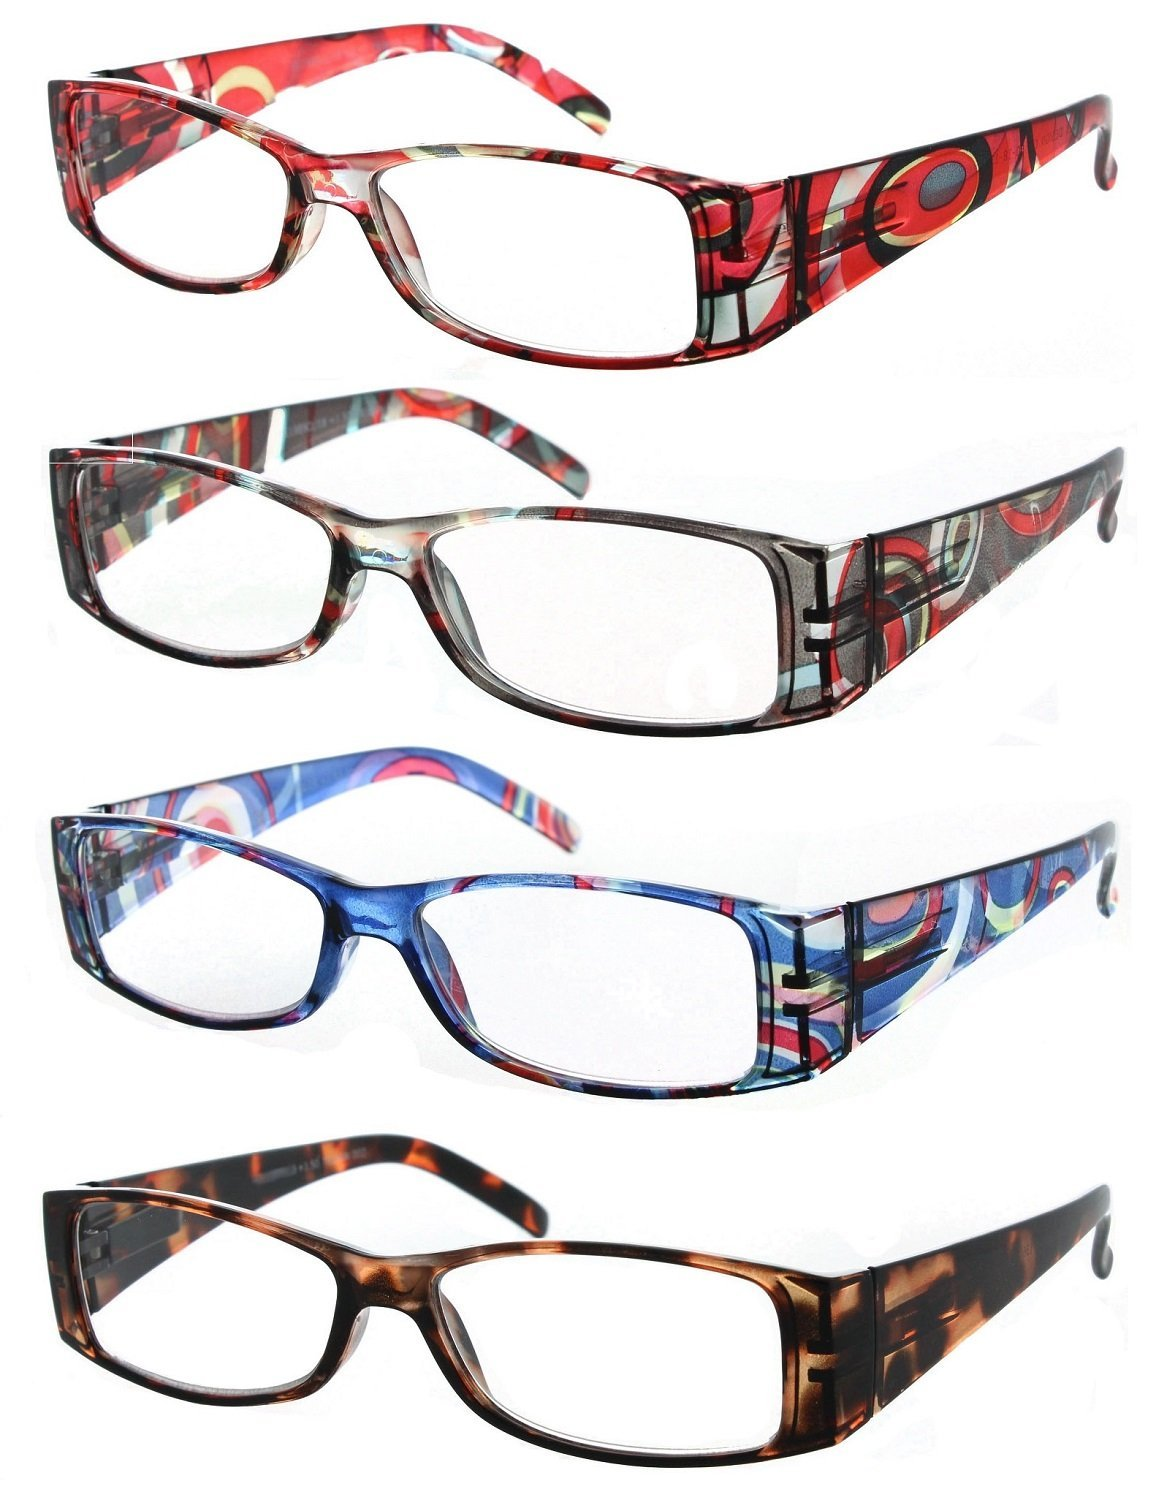 b8096f63893e Brighton Reading Glasses -Cool Funky Fun Reading Glasses